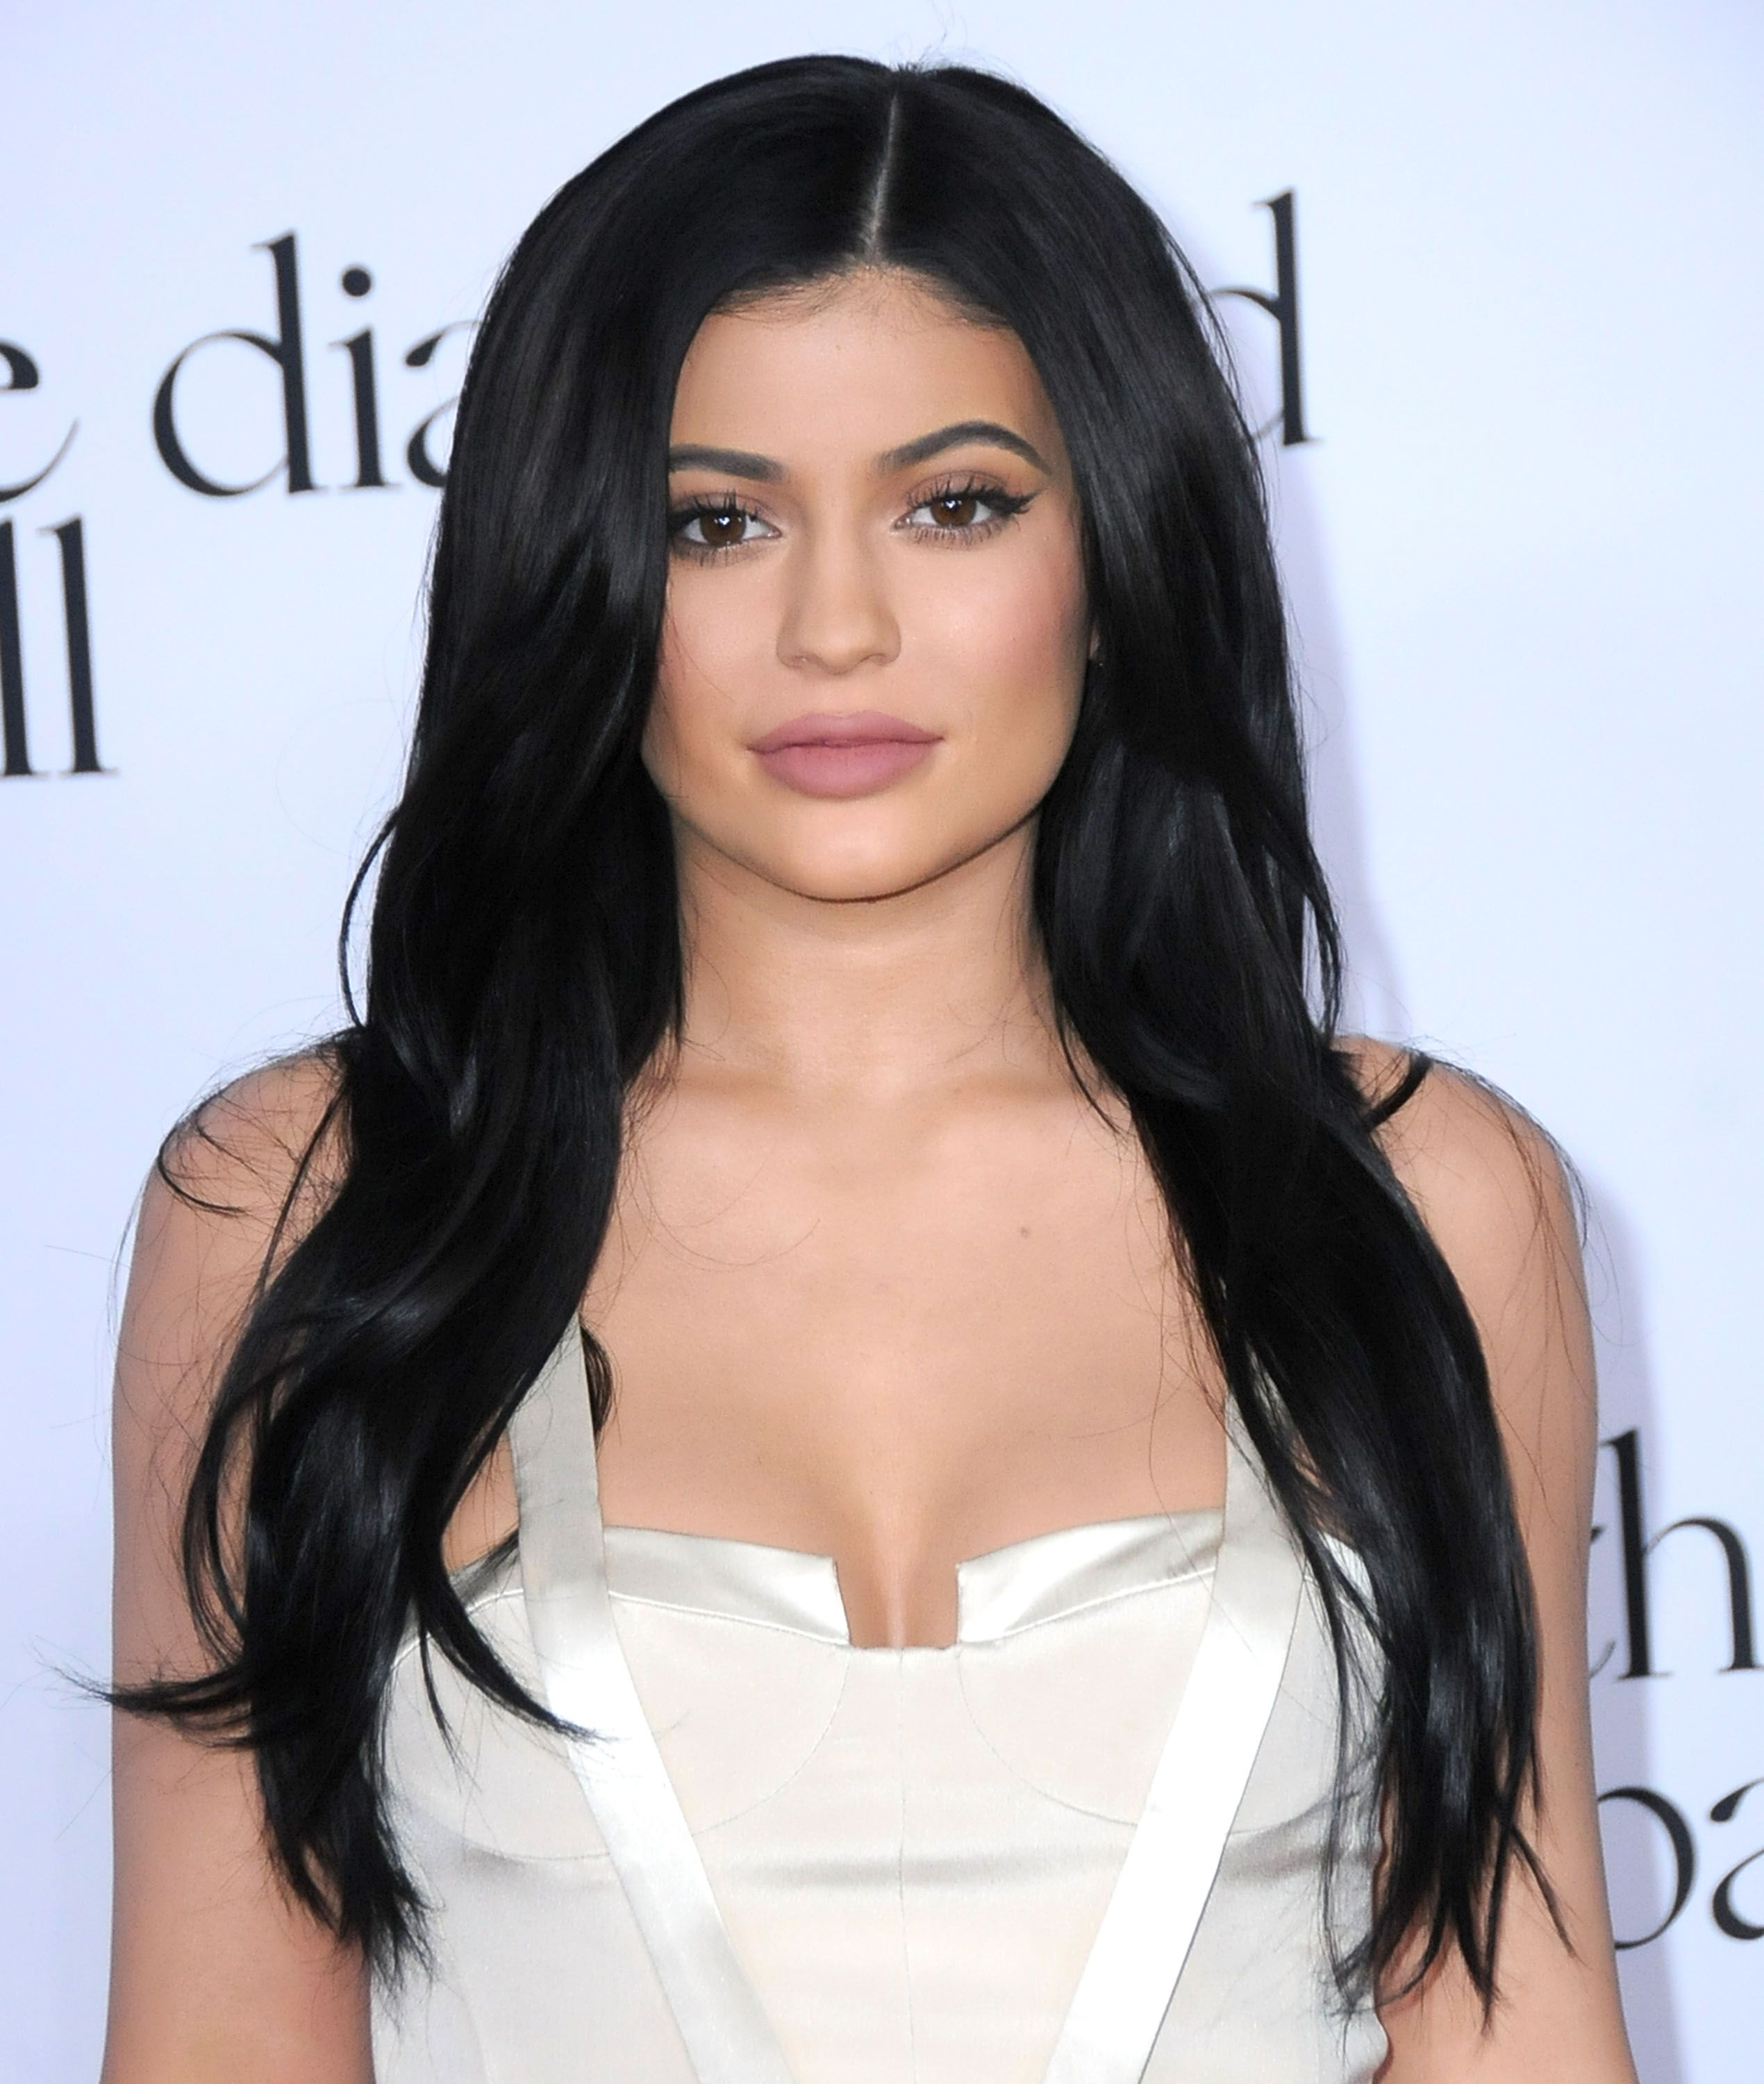 50 Best Kylie Jenner Hair Looks The Best Hairstyles Of Kylie Jenner